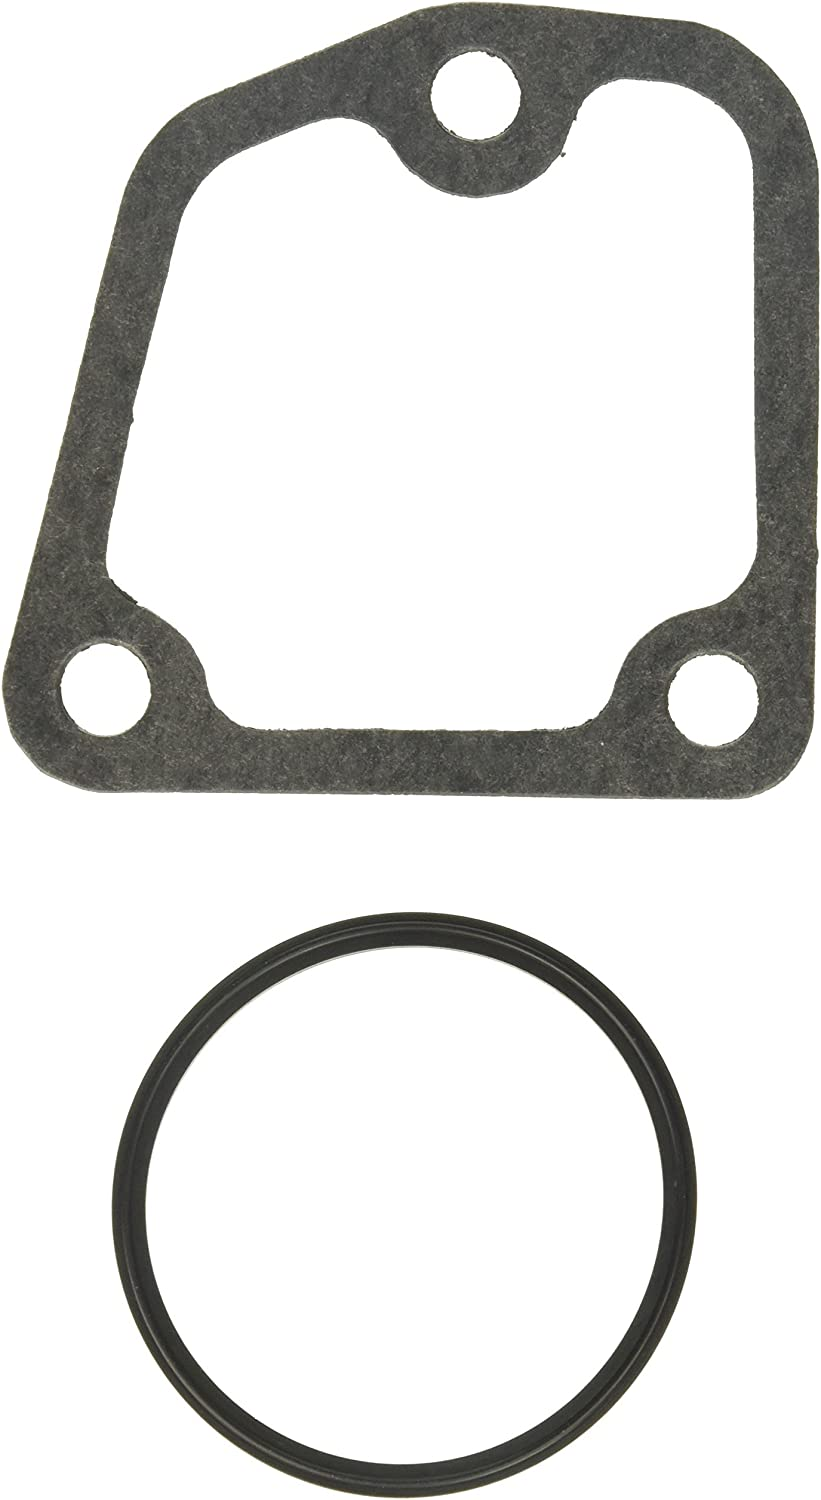 ACDelco 12TH11D Professional 180 Degrees Engine Coolant Thermostat with Gasket 12TH11D-ACD